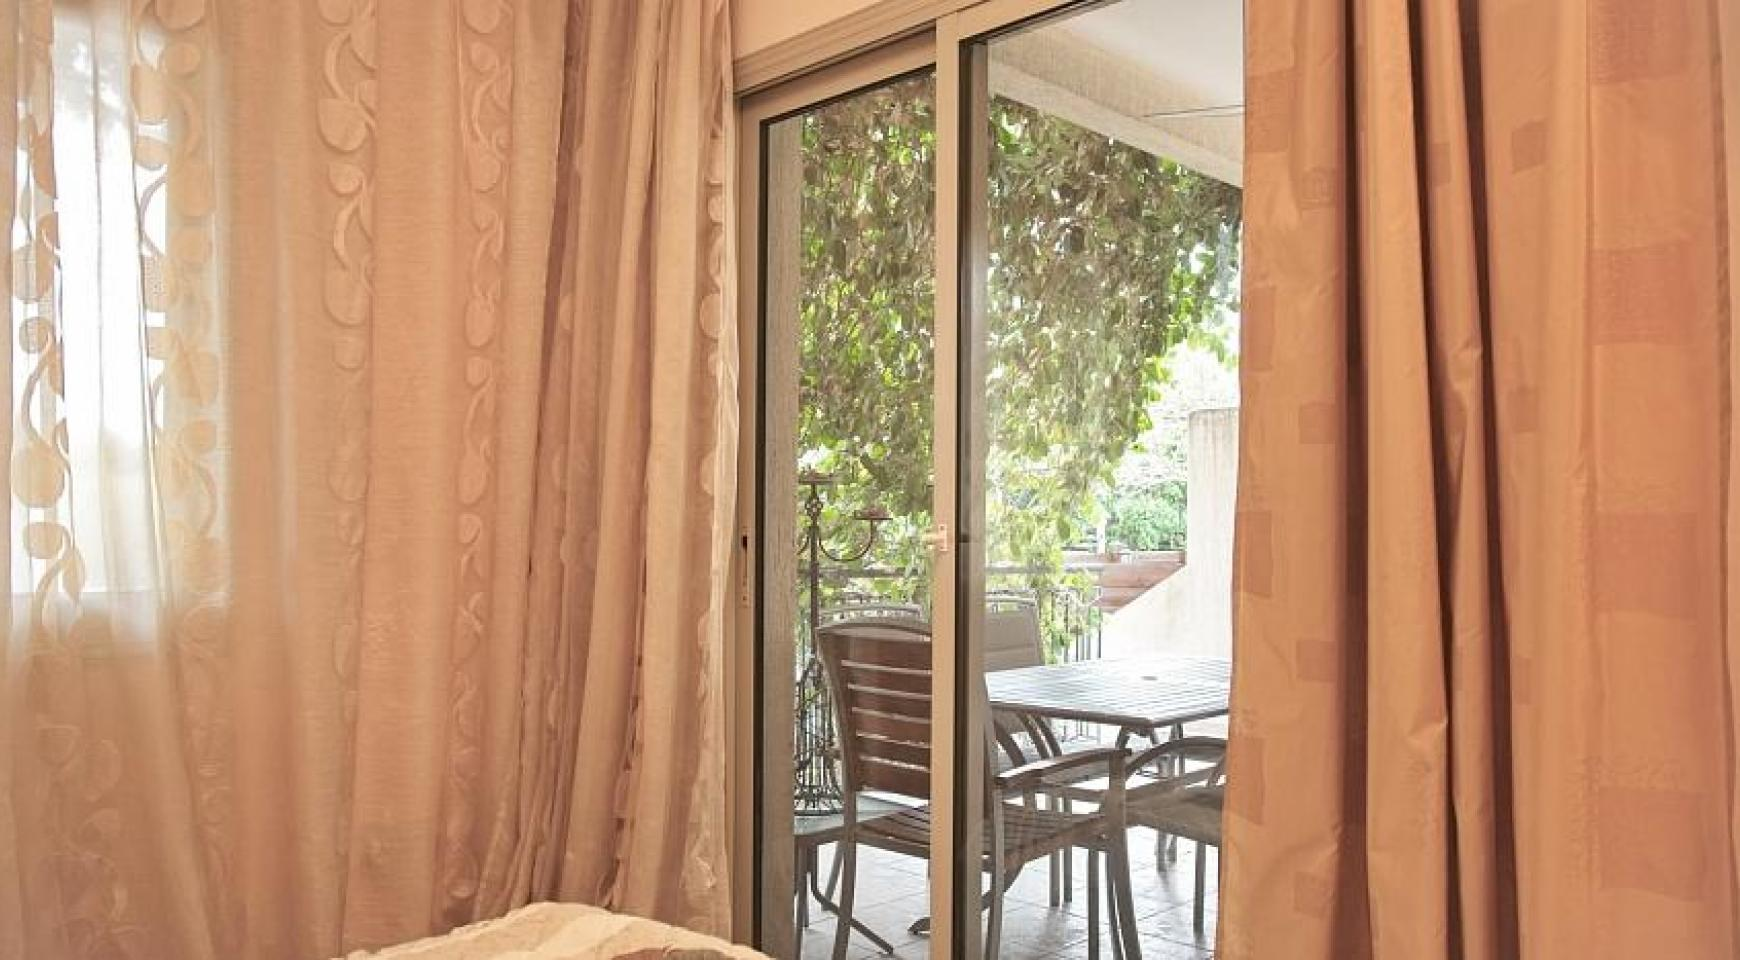 2 Bedroom Apartment with Private Garden - 8